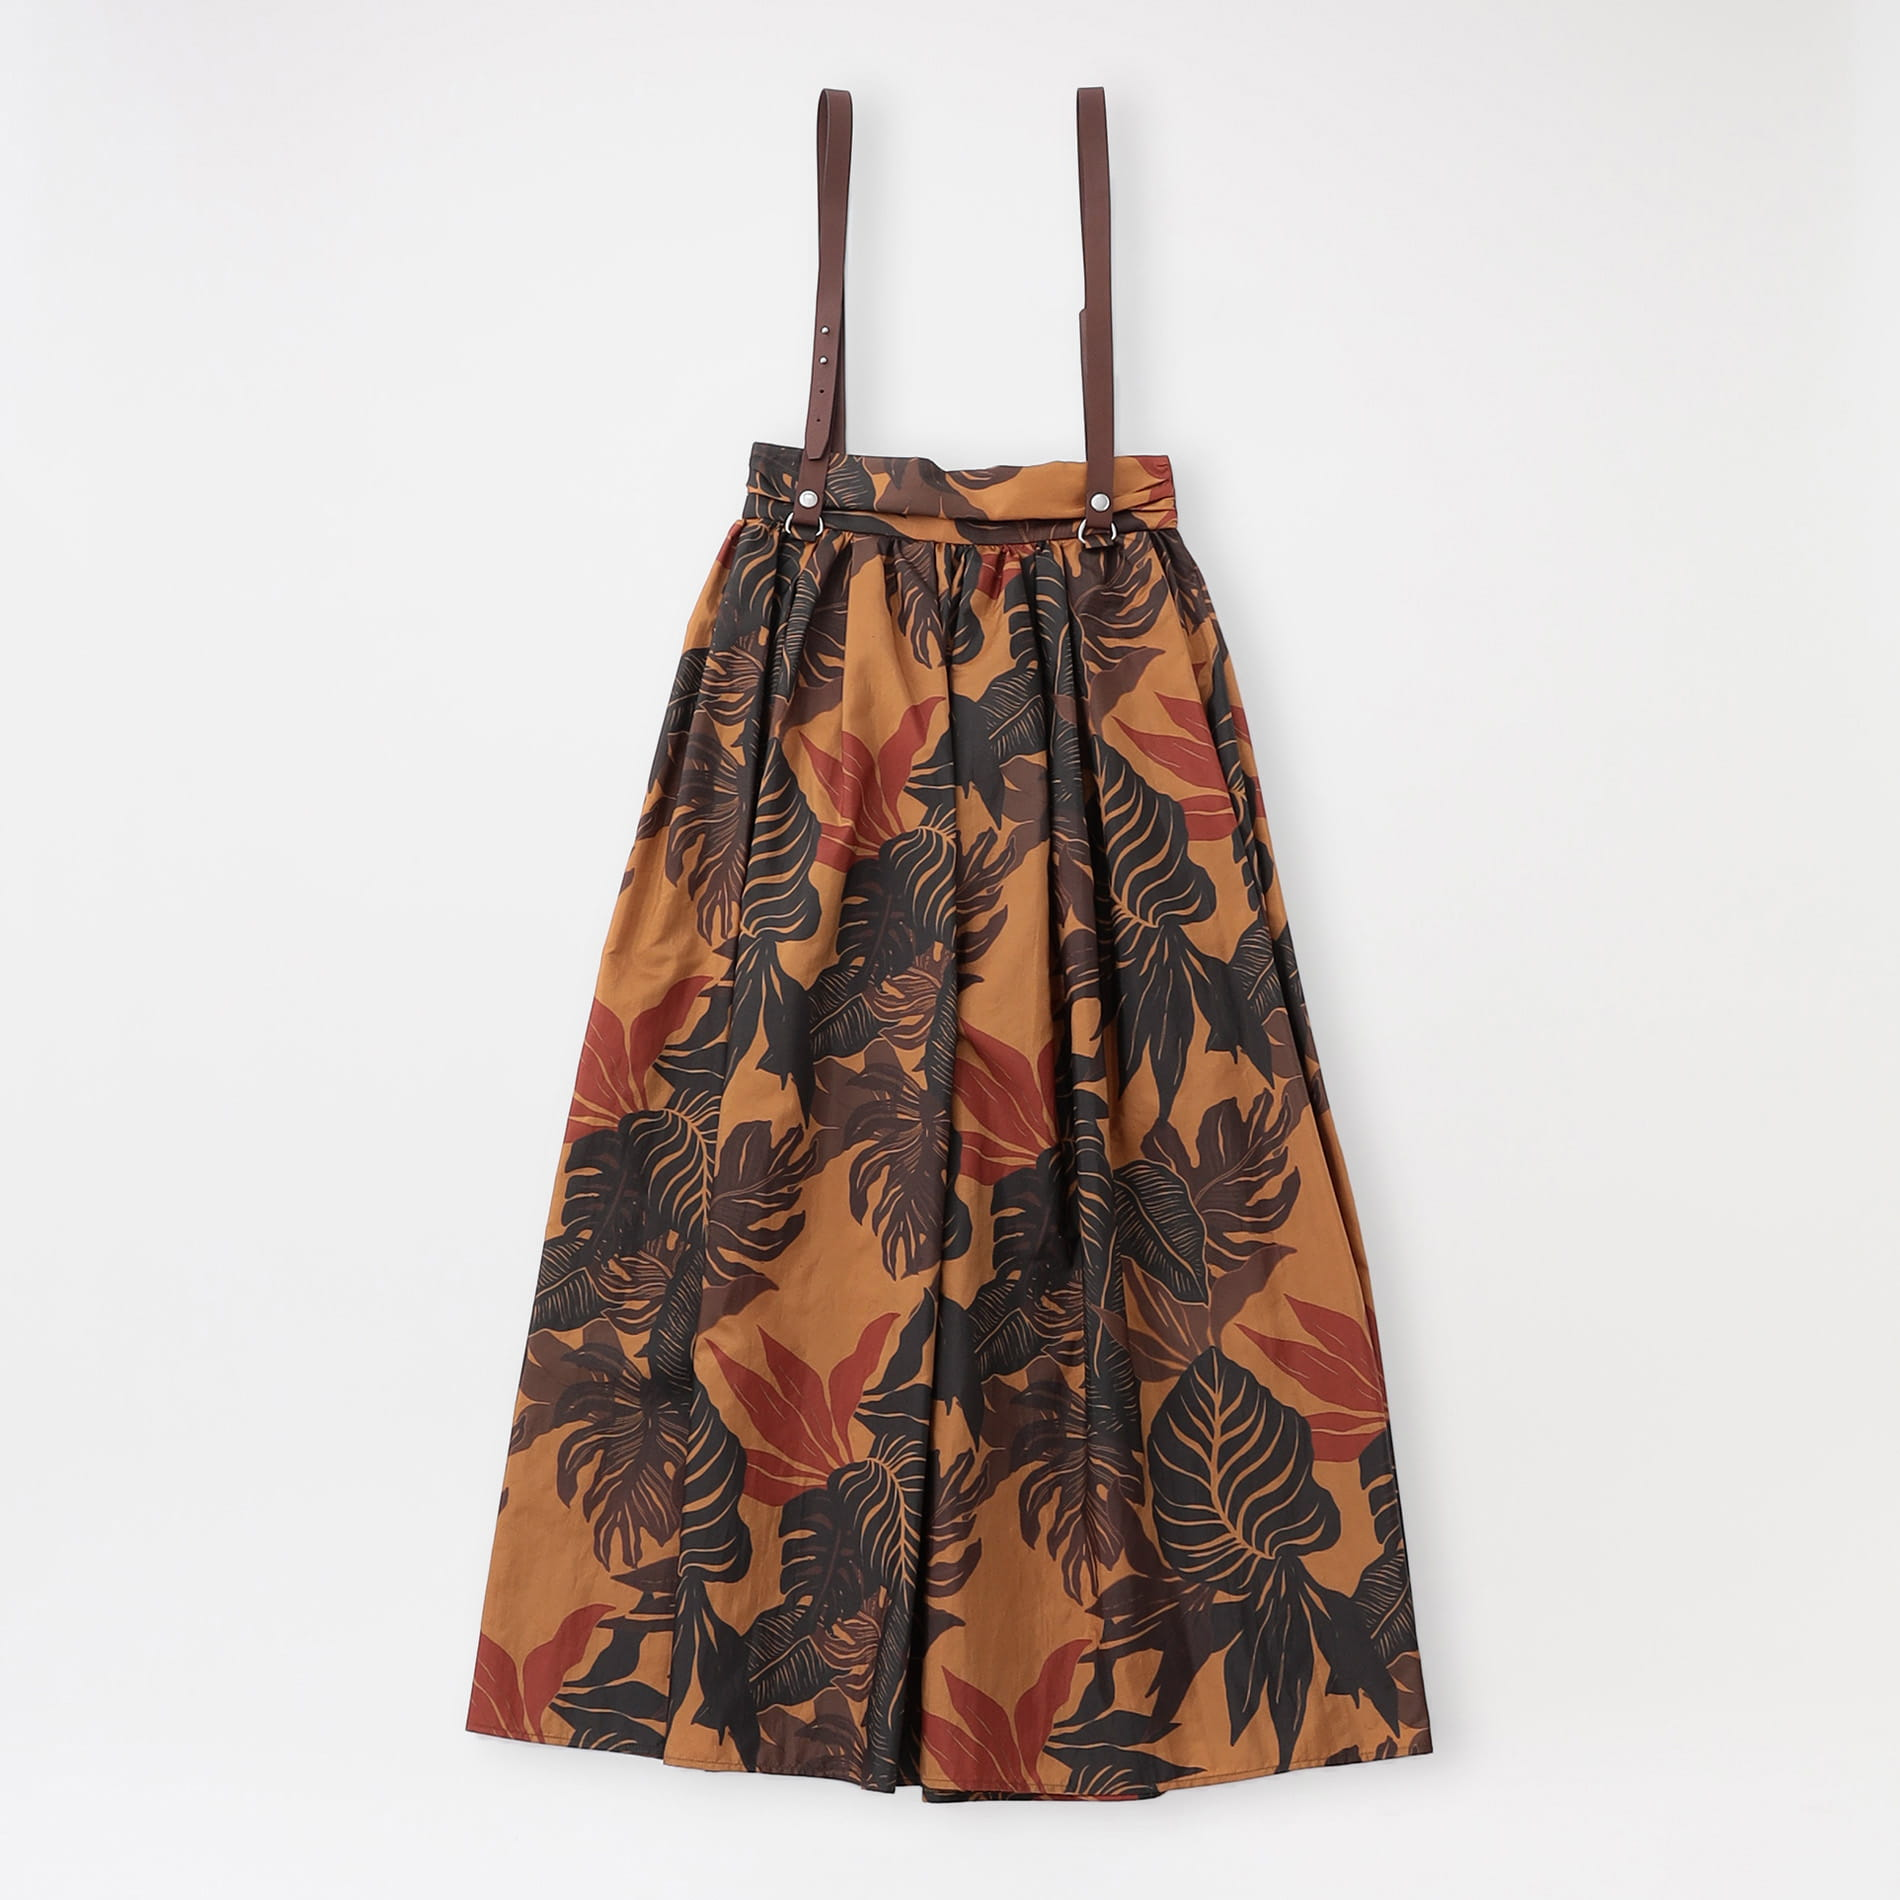 【muller of yoshiokubo】WOMEN スカート Botanic gather skirt MLS21405B